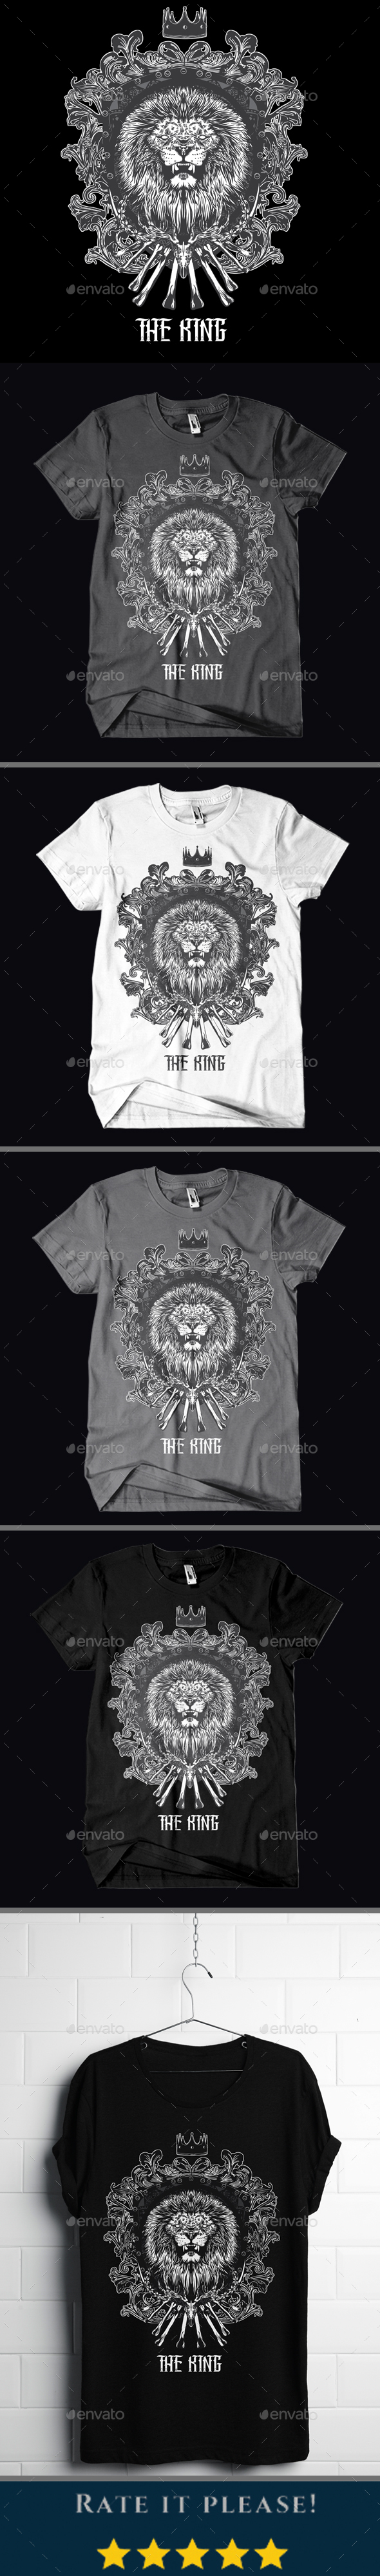 The King T-shirt Design - T-Shirts